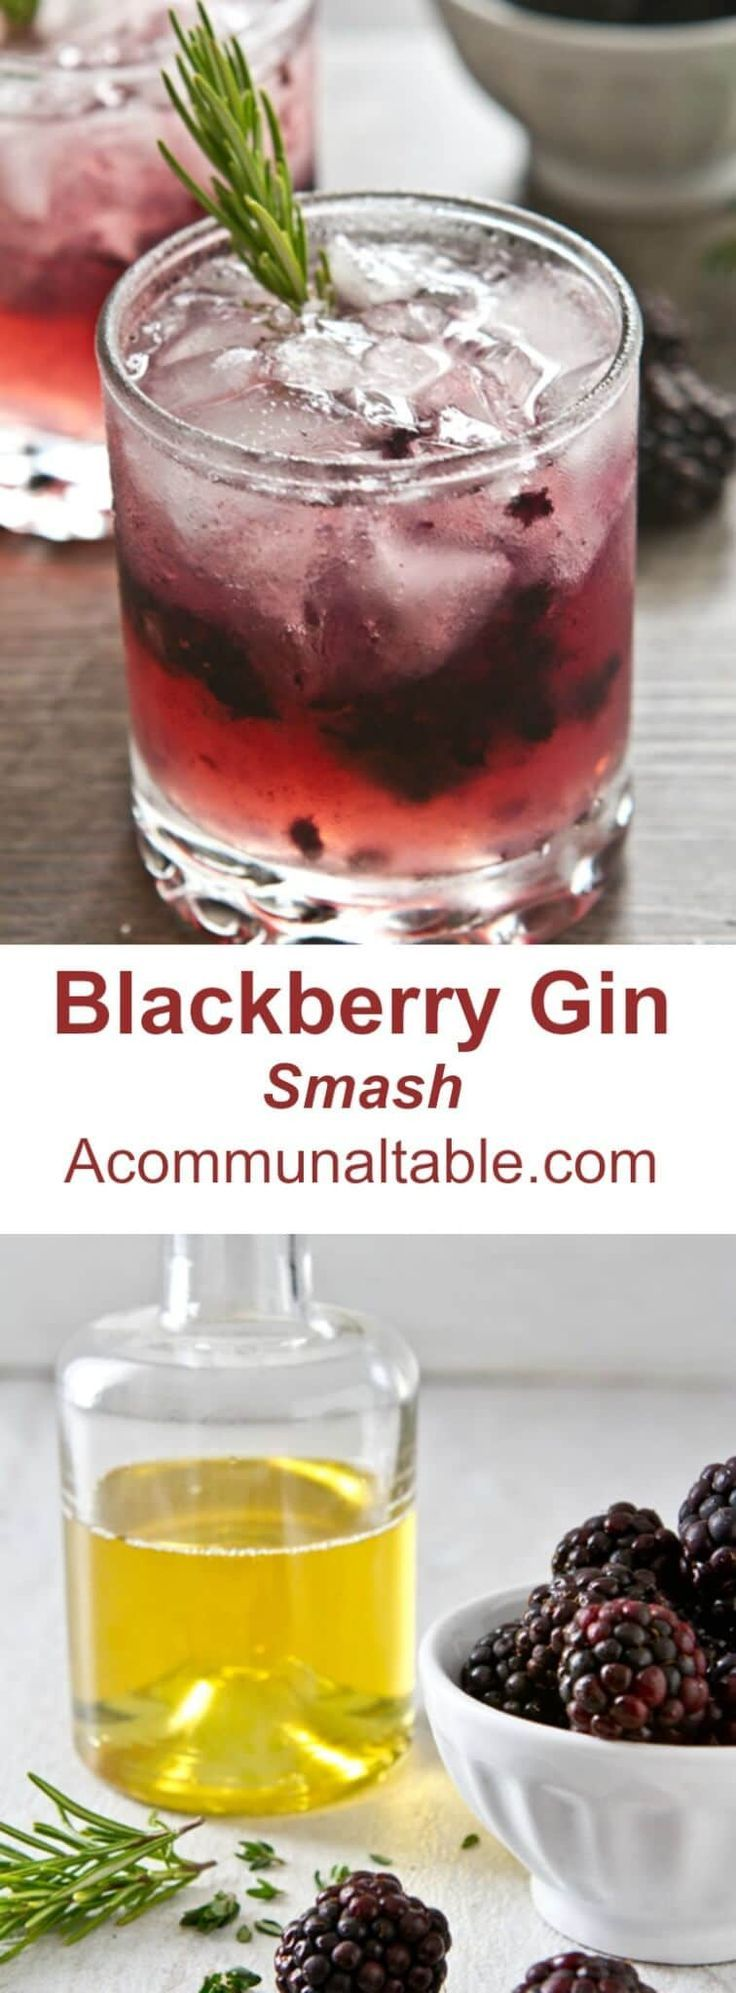 This Summer in Provence Cocktail is a smash! Crushed blackberries. gin, lemon juice and an infused rosemary thyme syrup make for easy summer sipping. #blackberry #blackberries #drinkrecipe #cocktails #cocktailrecipe